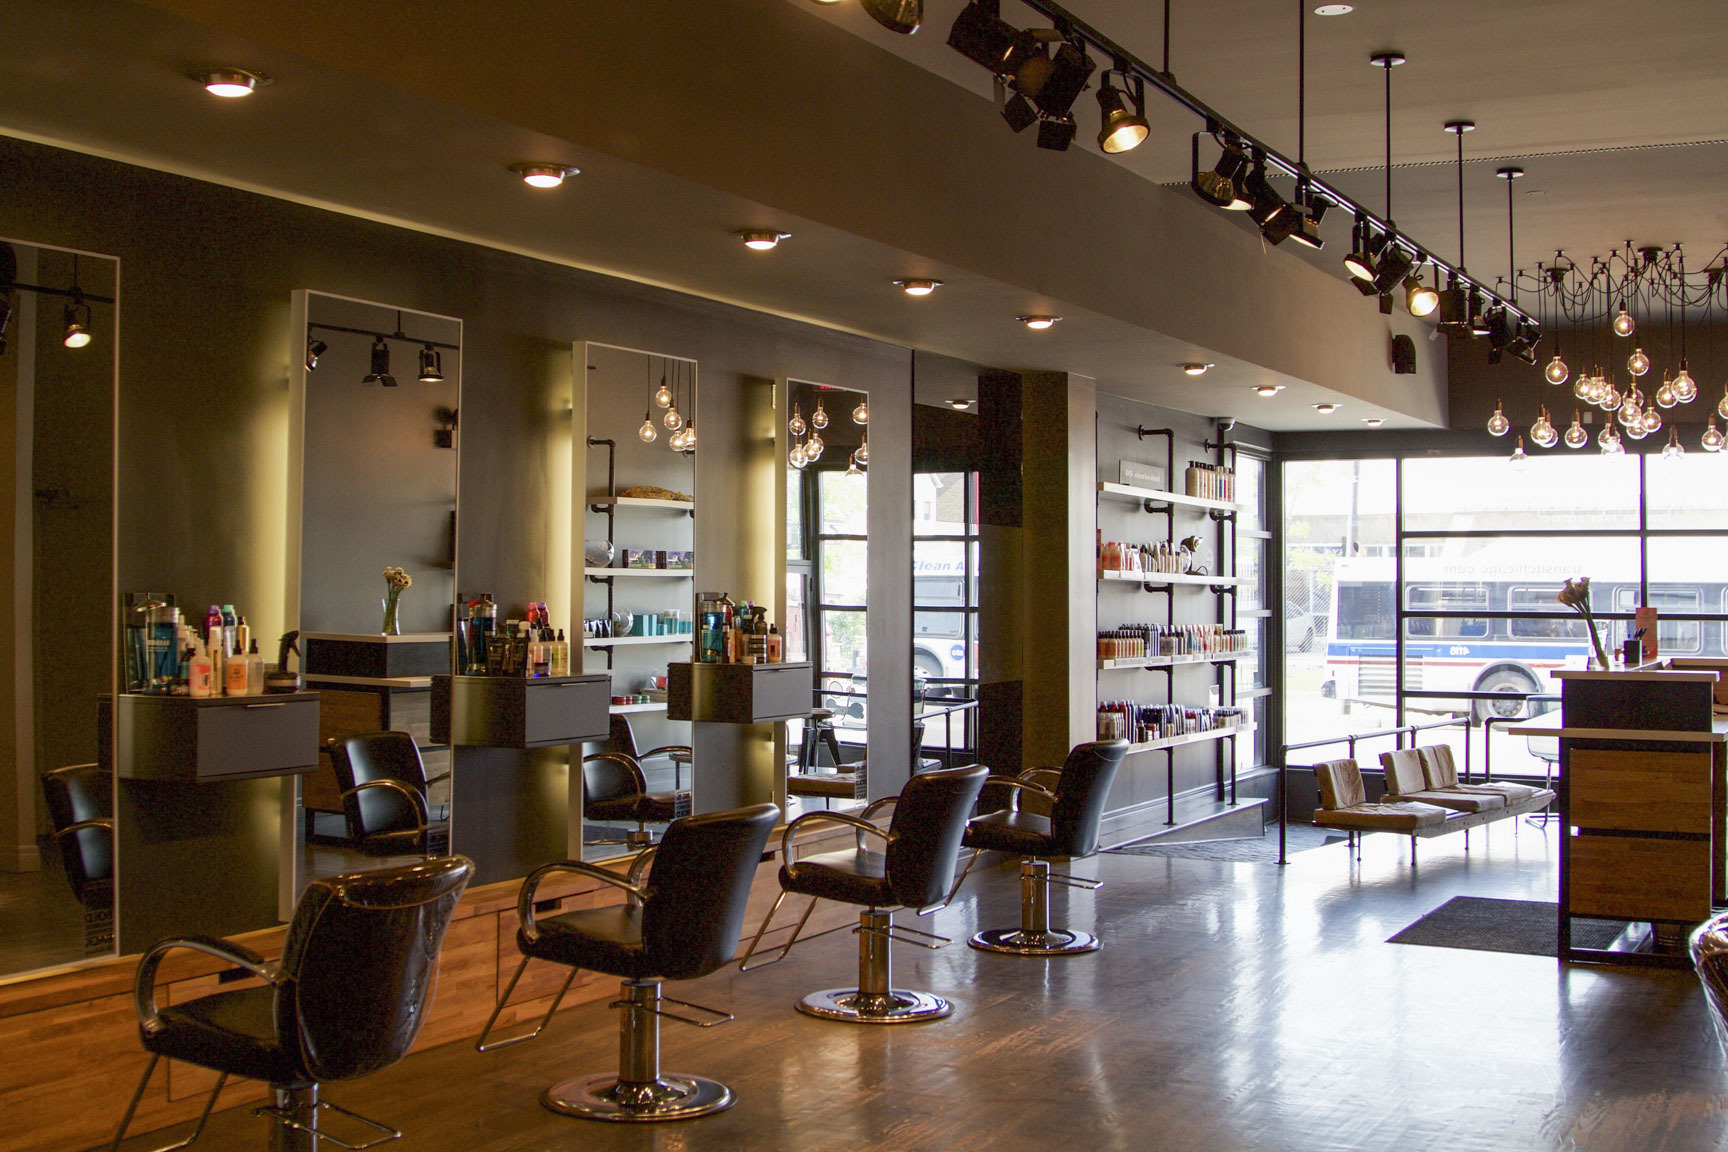 Hair salons in chicago for hair cuts color and blowouts for A new look salon